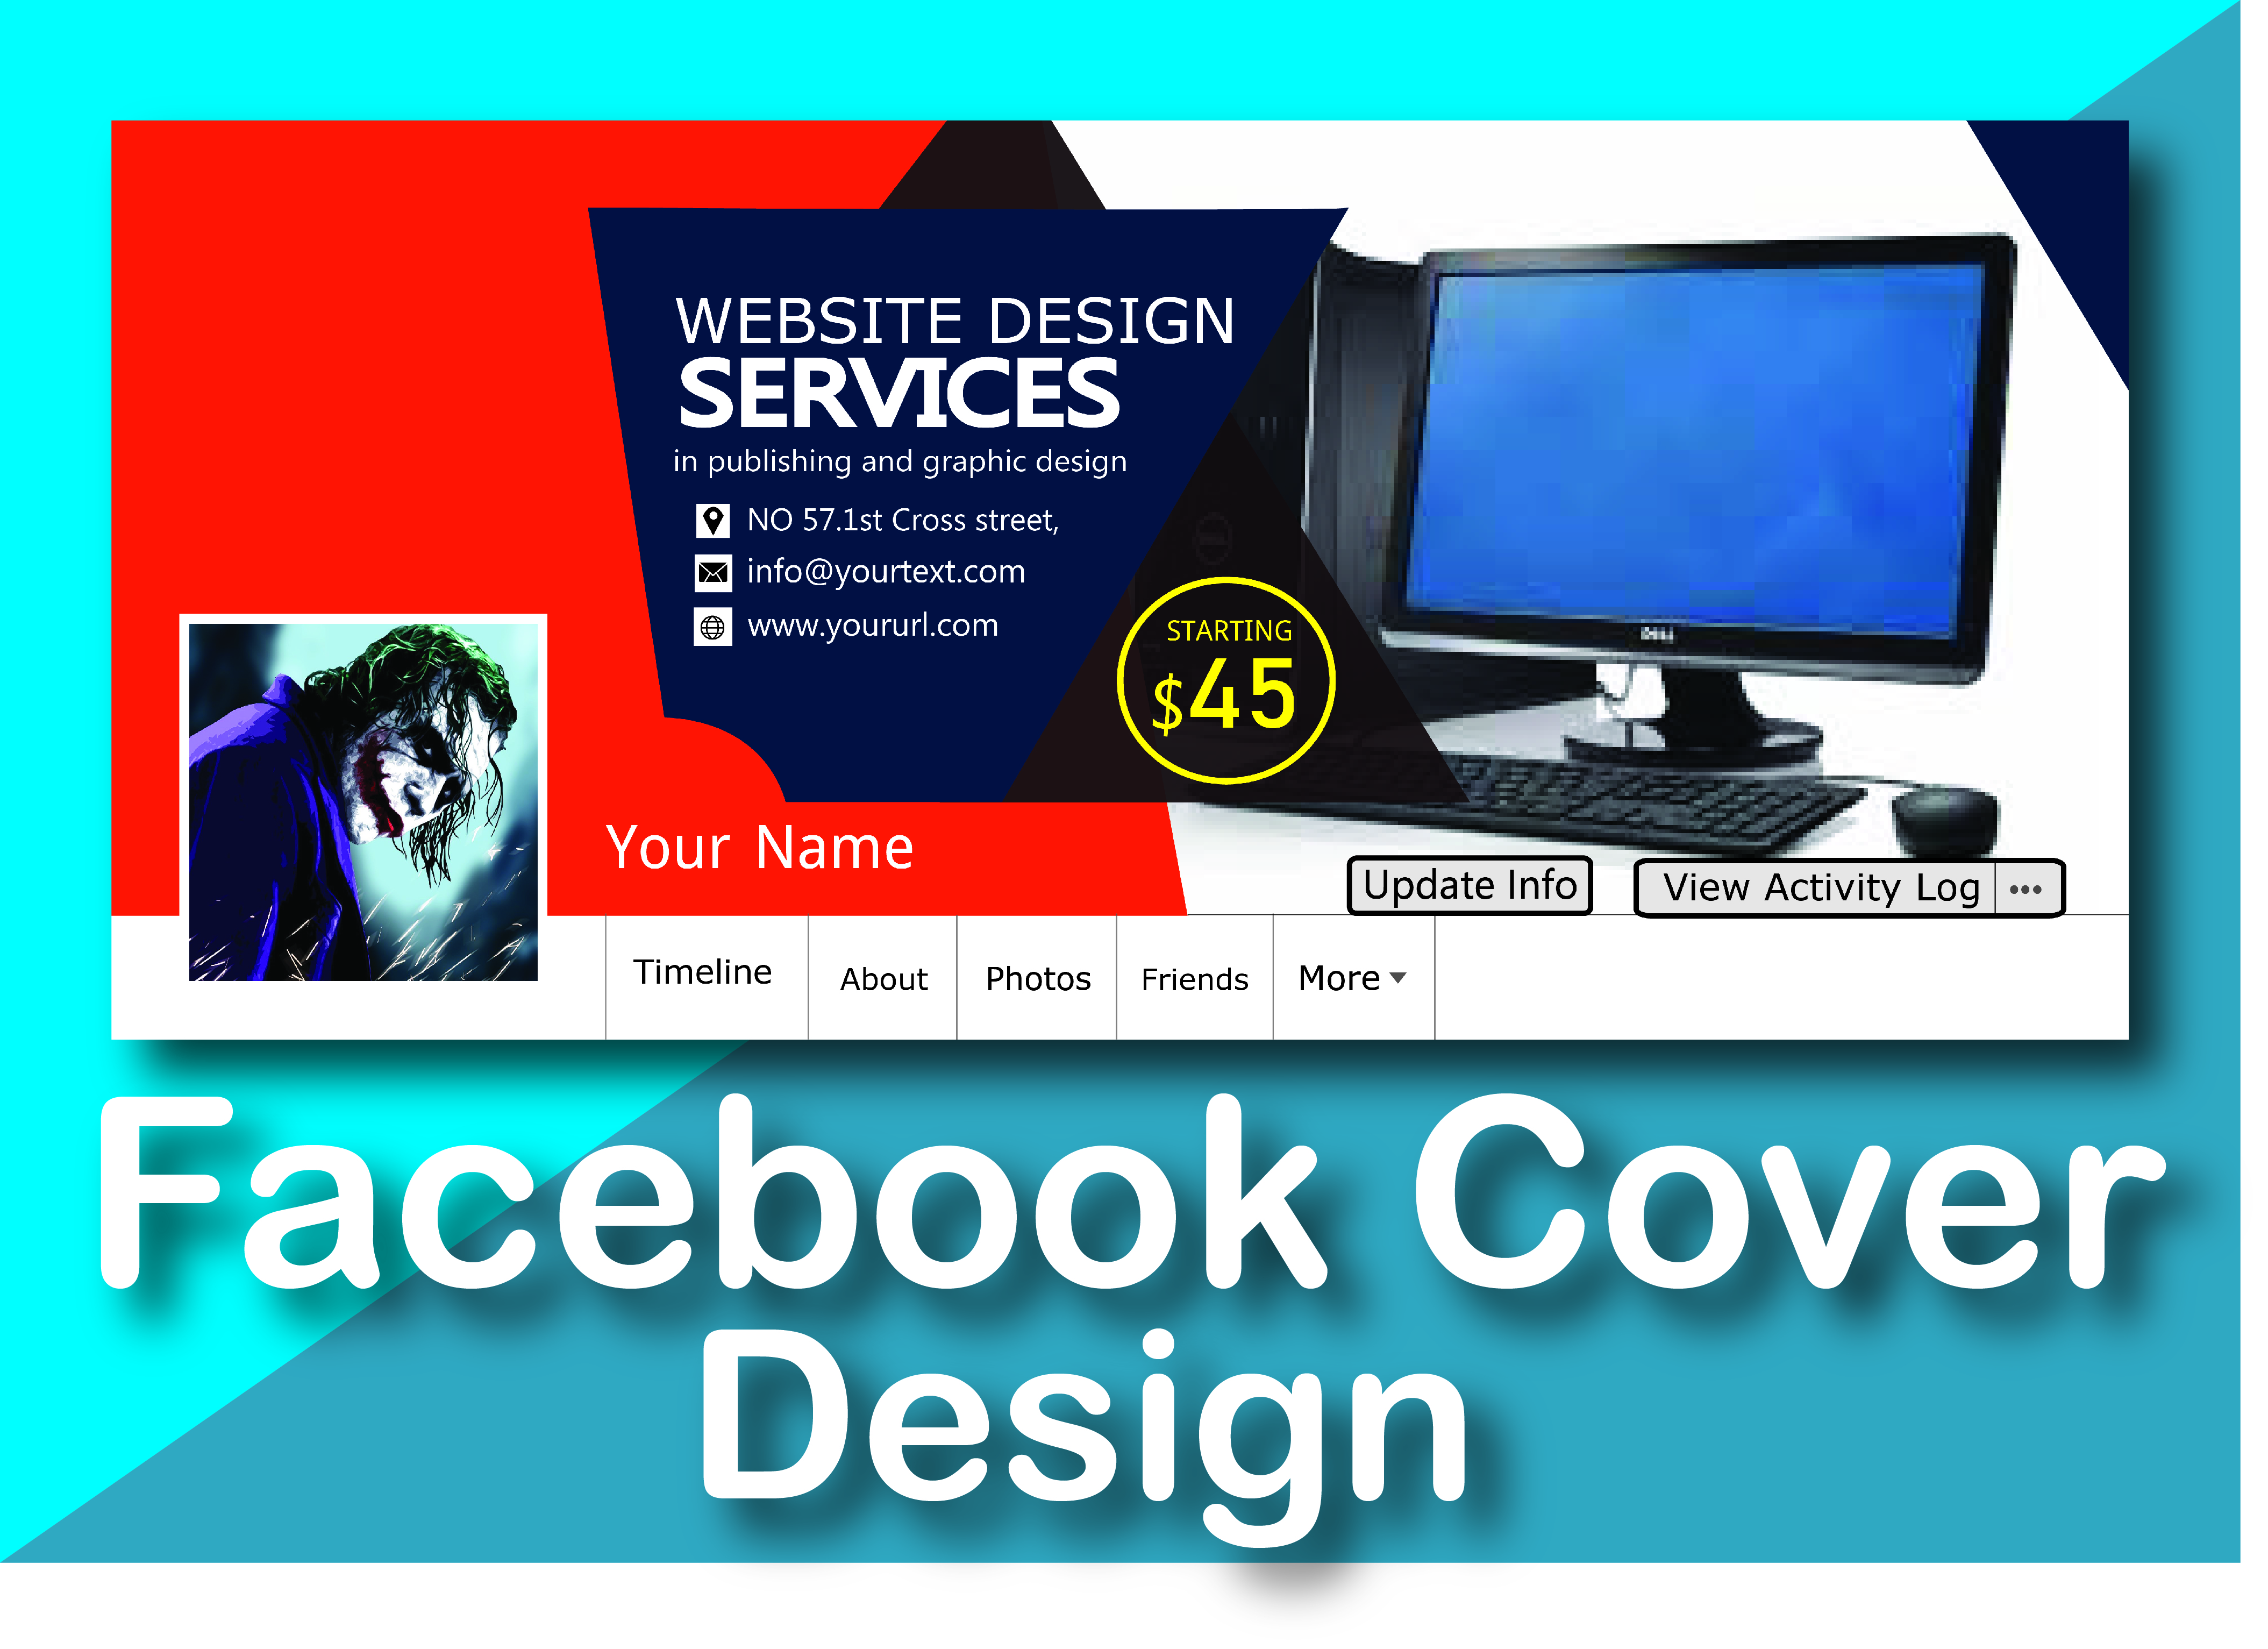 I will design facebook cover and social media banner for you